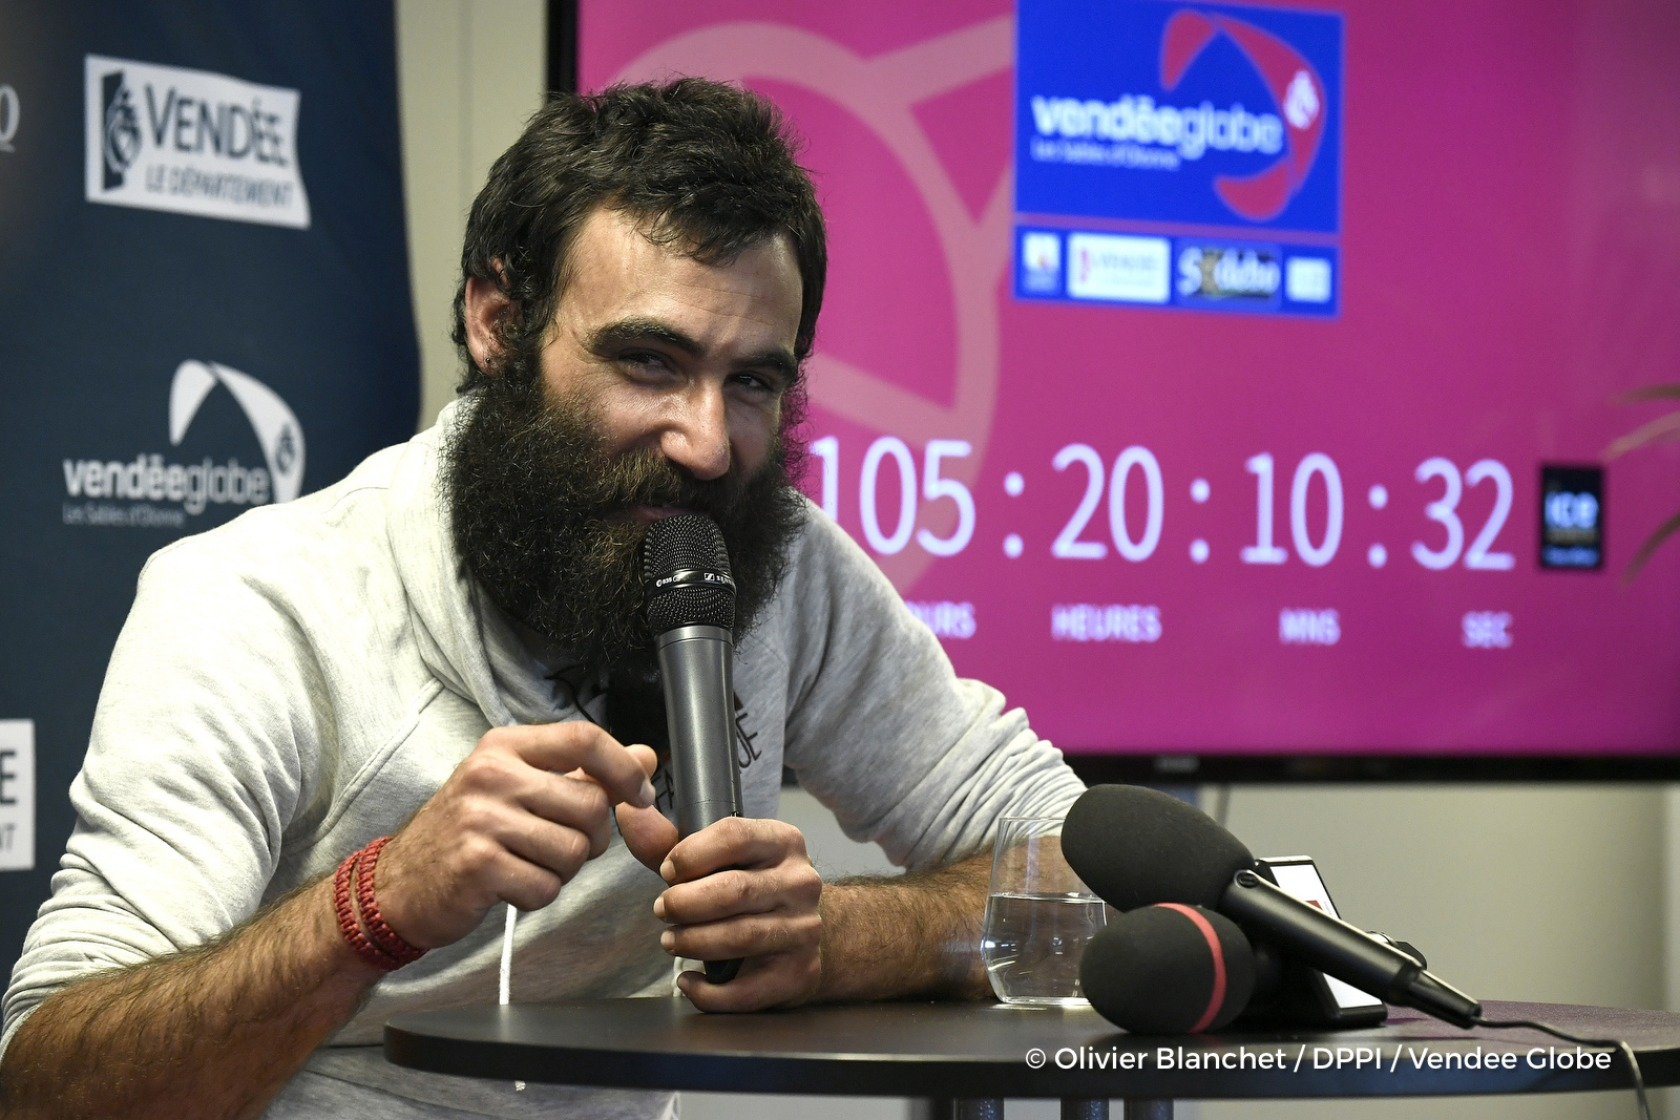 Press conference during Finish arrival of Alan Roura (SUI), skipper La Fabrique, 12th of the sailing circumnavigation solo race Vendee Globe, in Les Sables d'Olonne, France, on February 20th, 2017 - Photo Olivier Blanchet / DPPI / Vendee GlobeArrivée de Alan Roura (SUI), skipper La Fabrique, 12ème du Vendee Globe, aux Sables d'Olonne, France, le 20 Février 2017 - Photo Olivier Blanchet / DPPI /